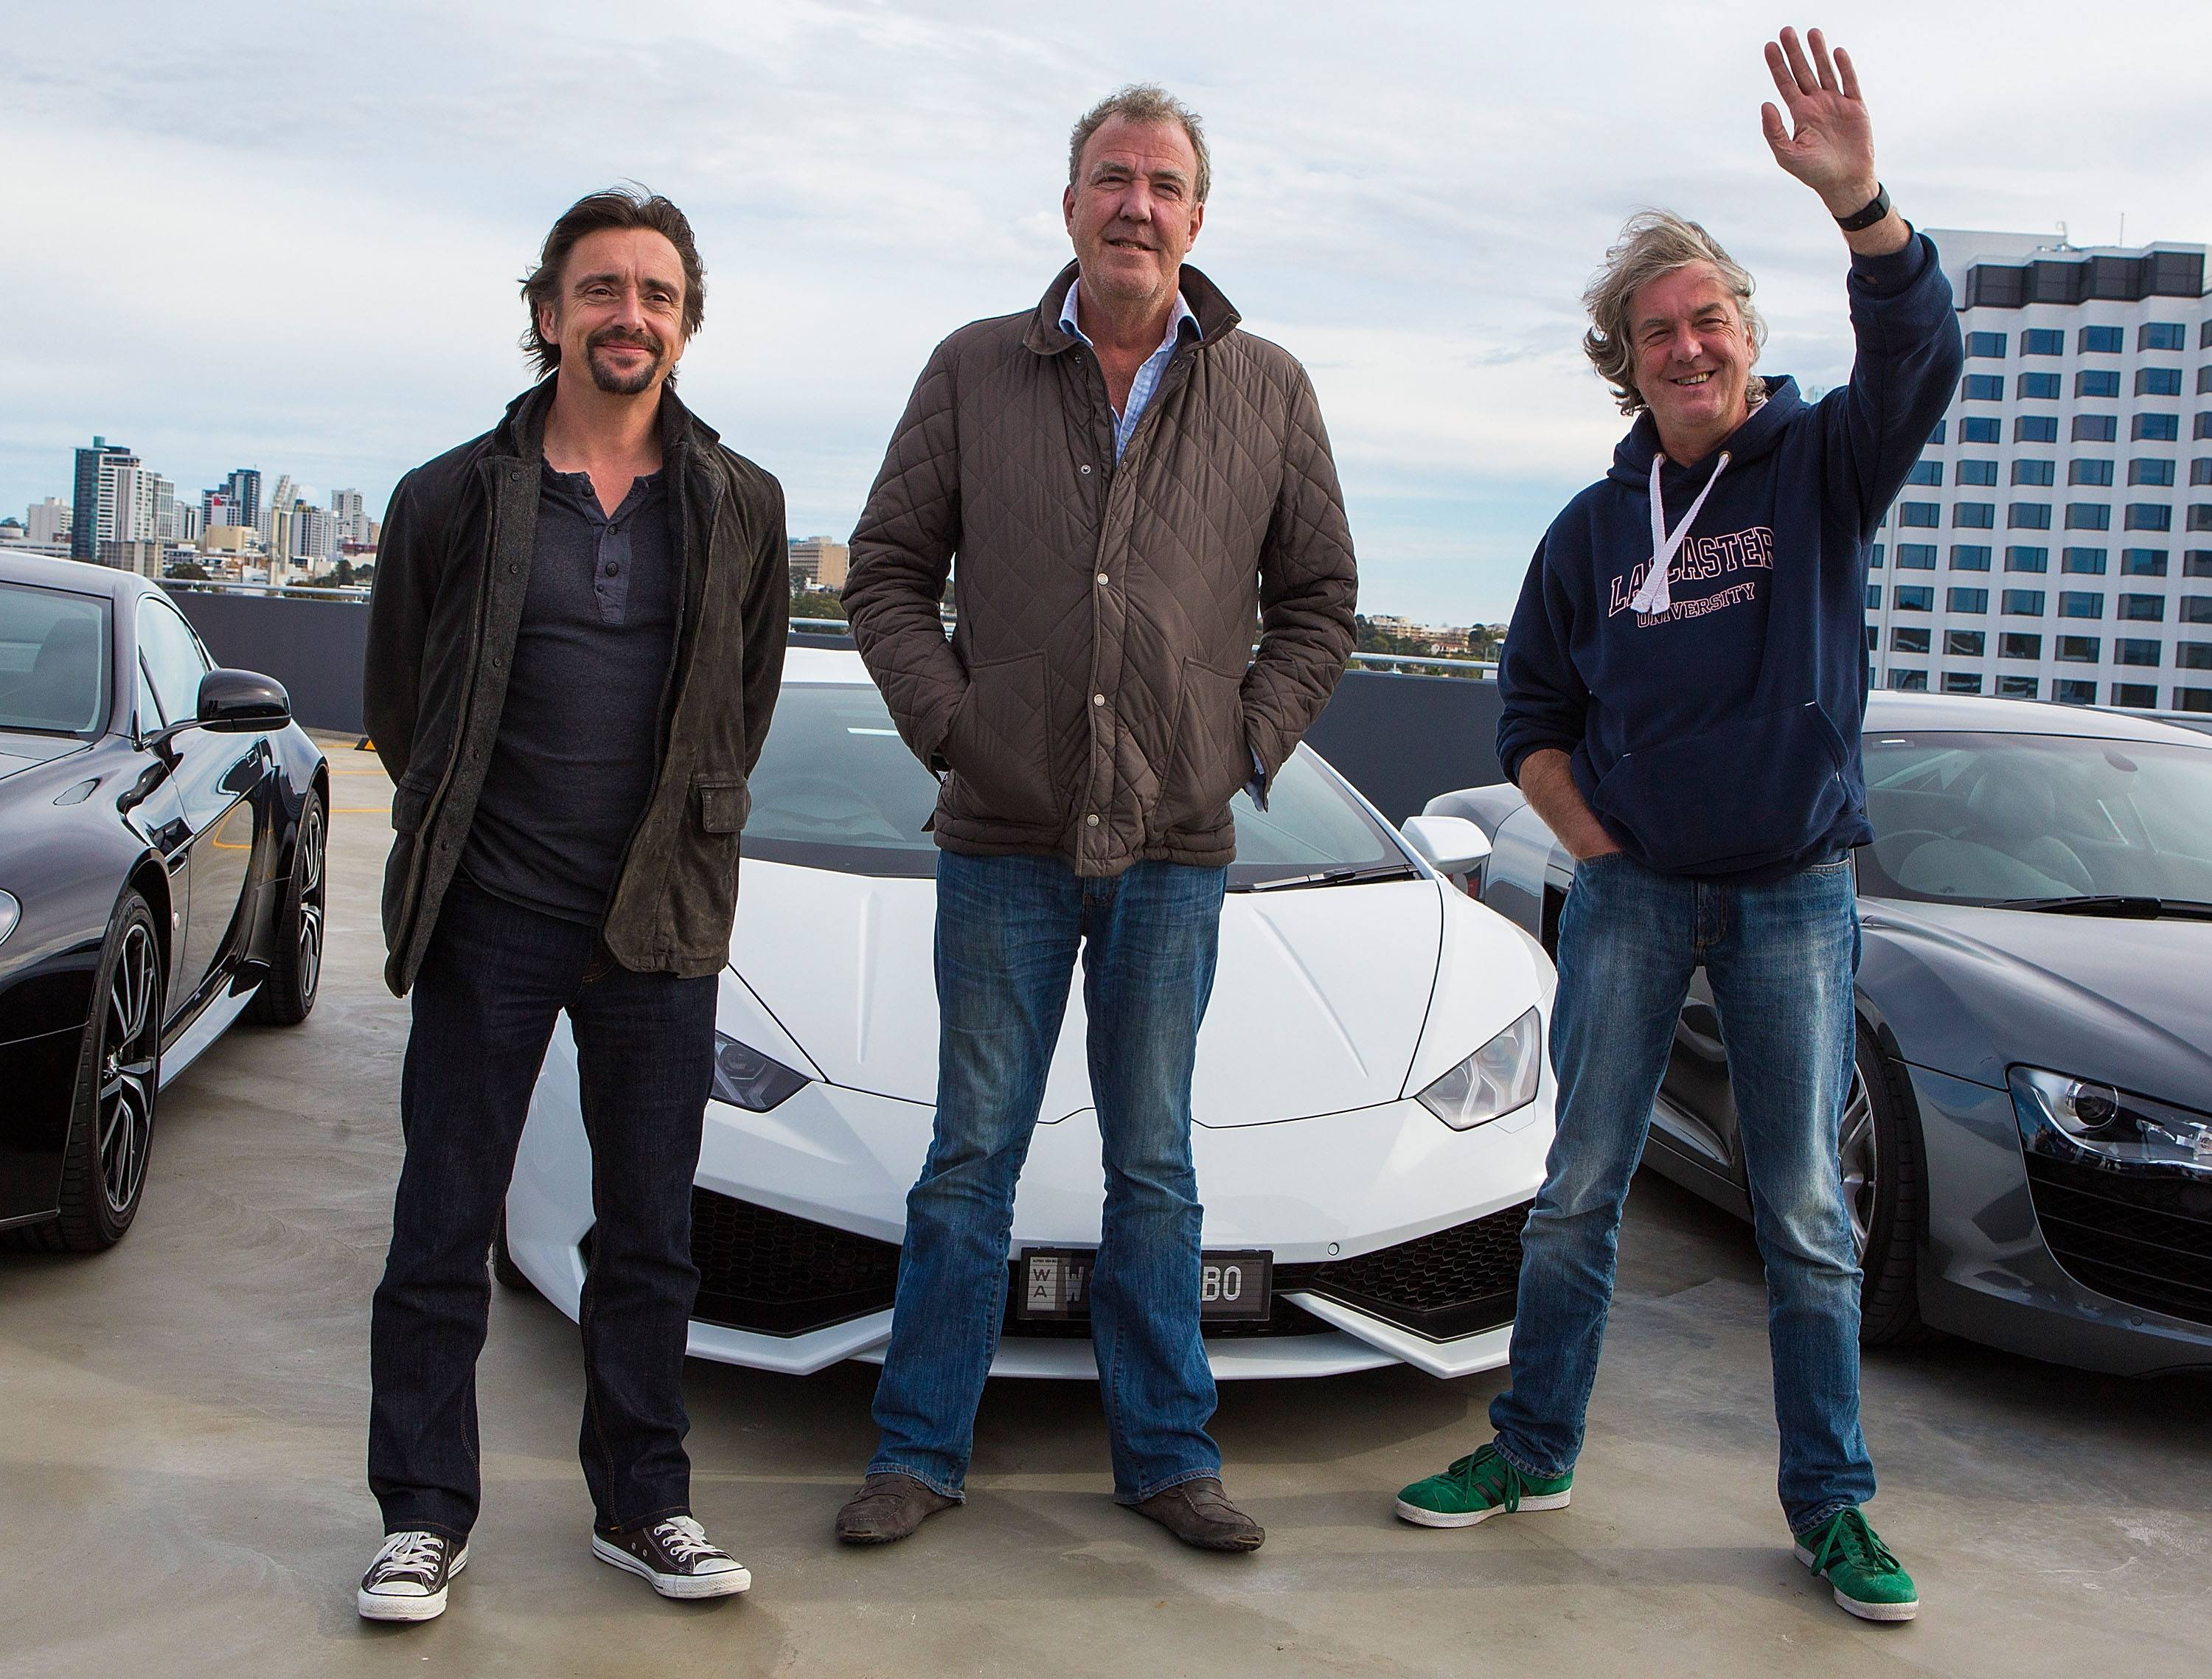 gettyimages 481025910 Jeremy Clarkson, James May & Richard Hammond Make Shock Announcement